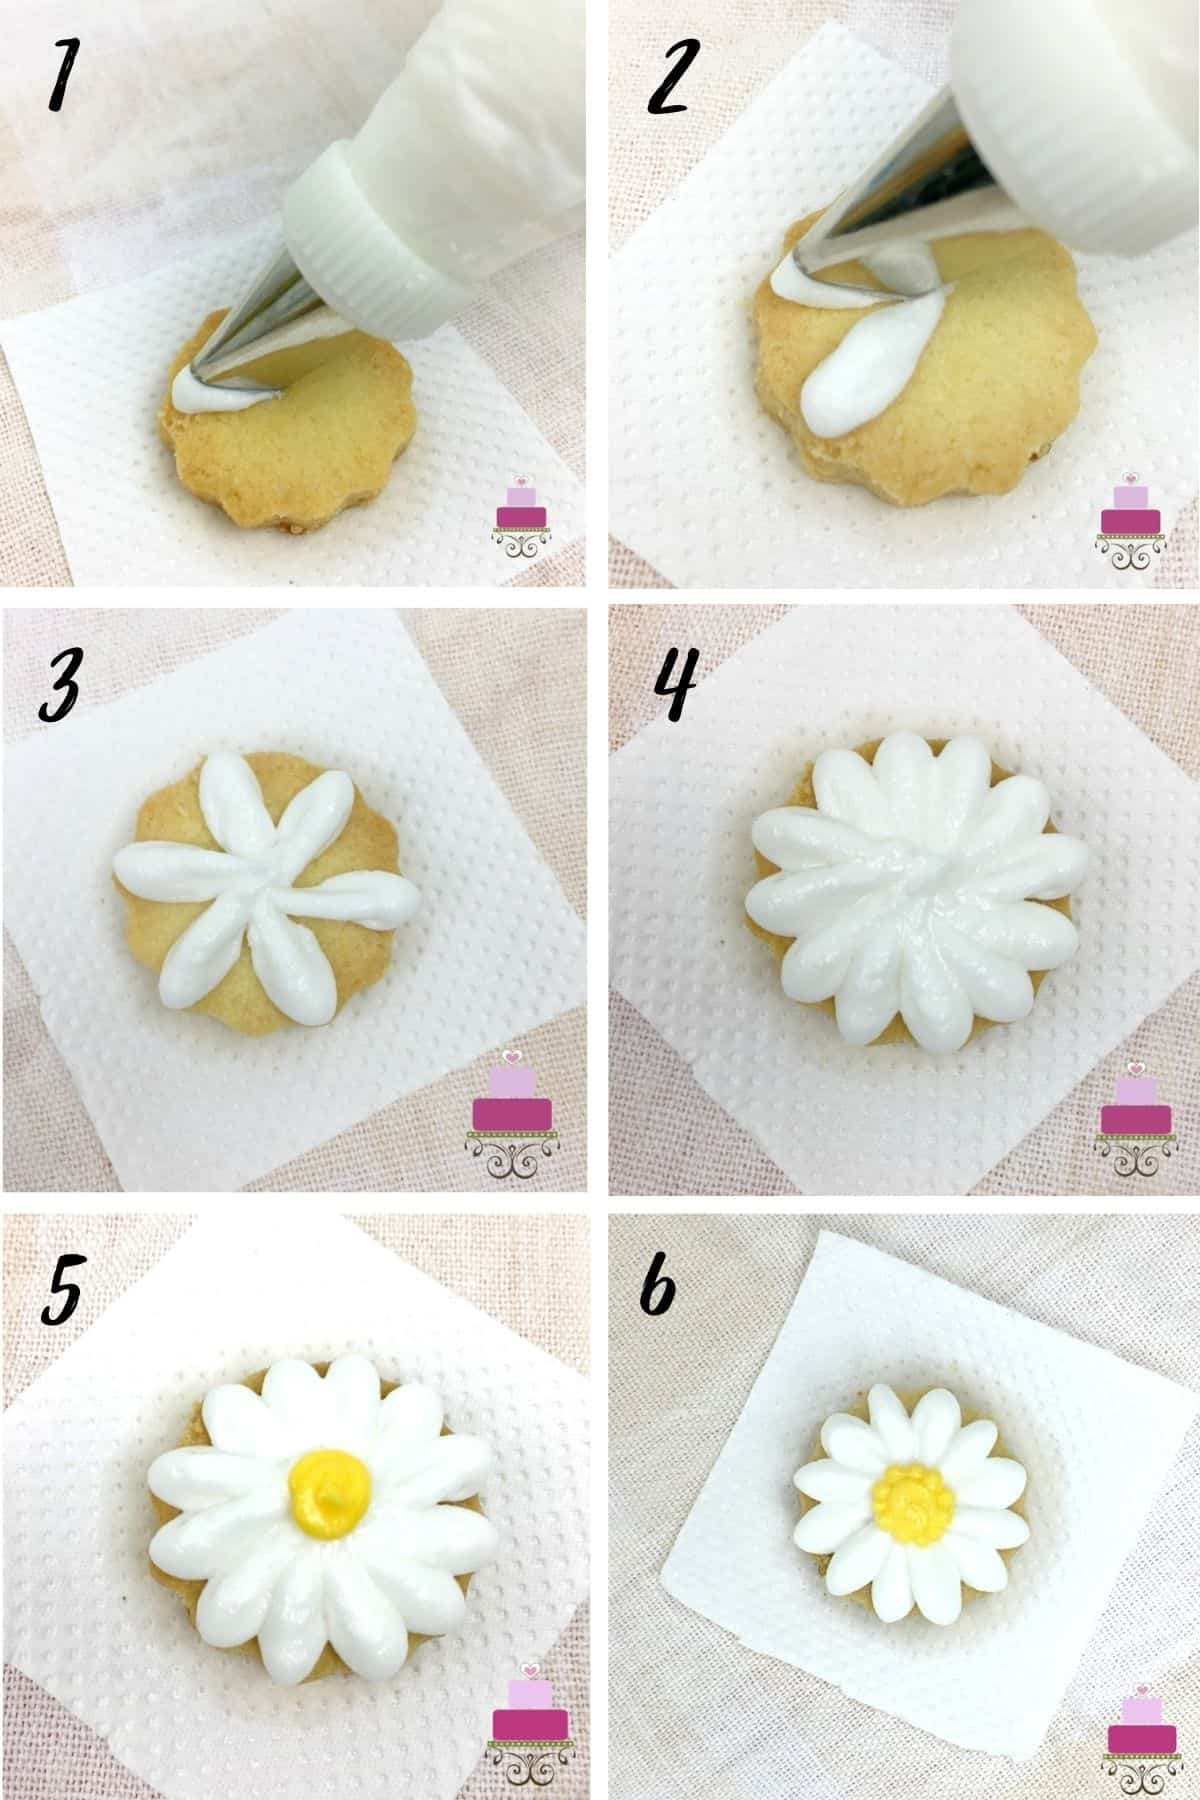 A poster of 6 images showing how to piped daisy flower on a cookies with royal icing